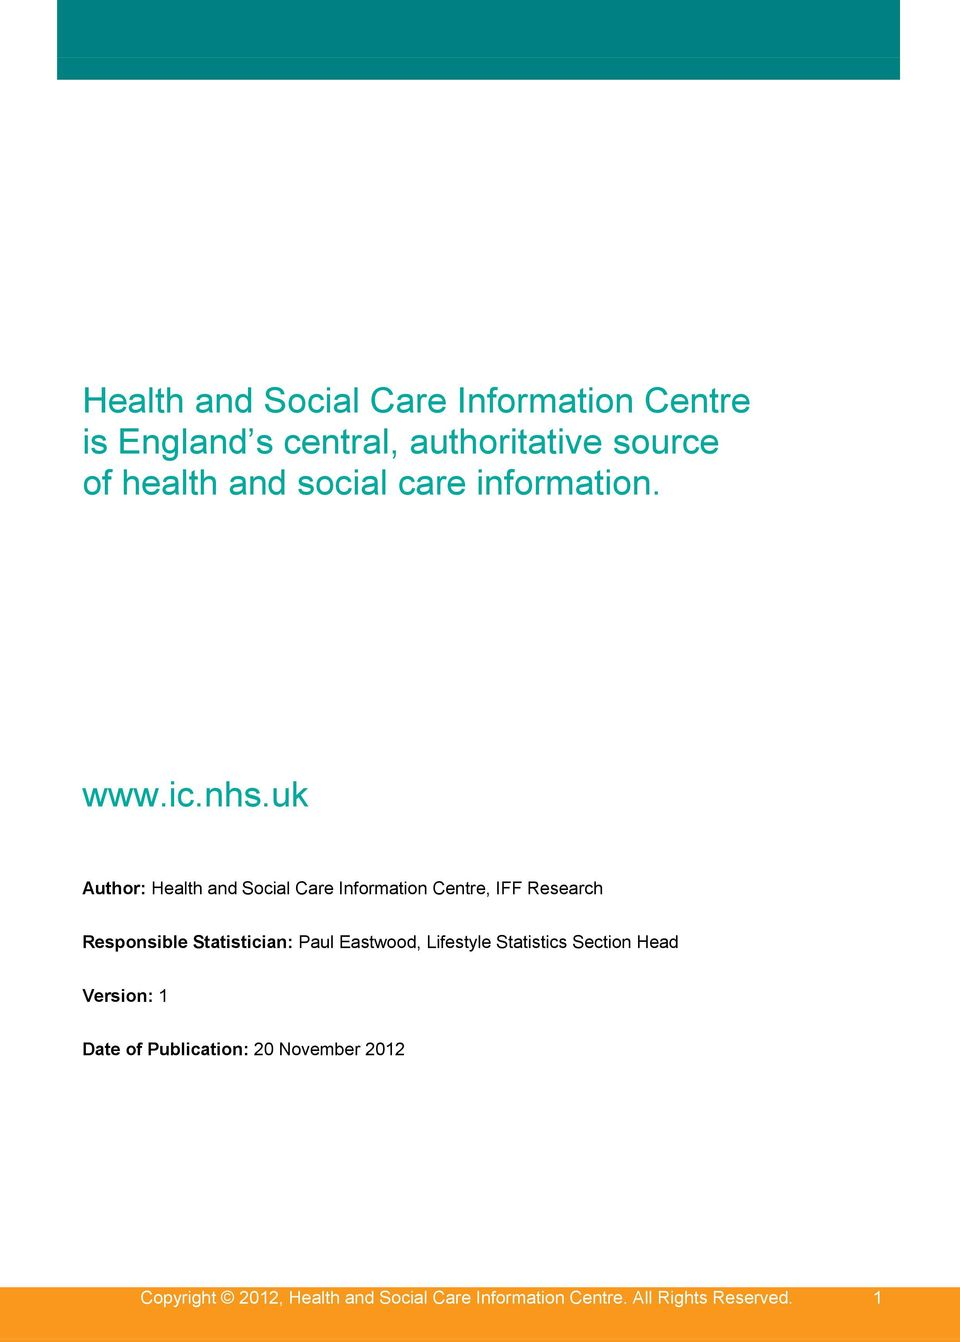 uk Author: Health and Social Care Information Centre, IFF Research Responsible Statistician: Paul